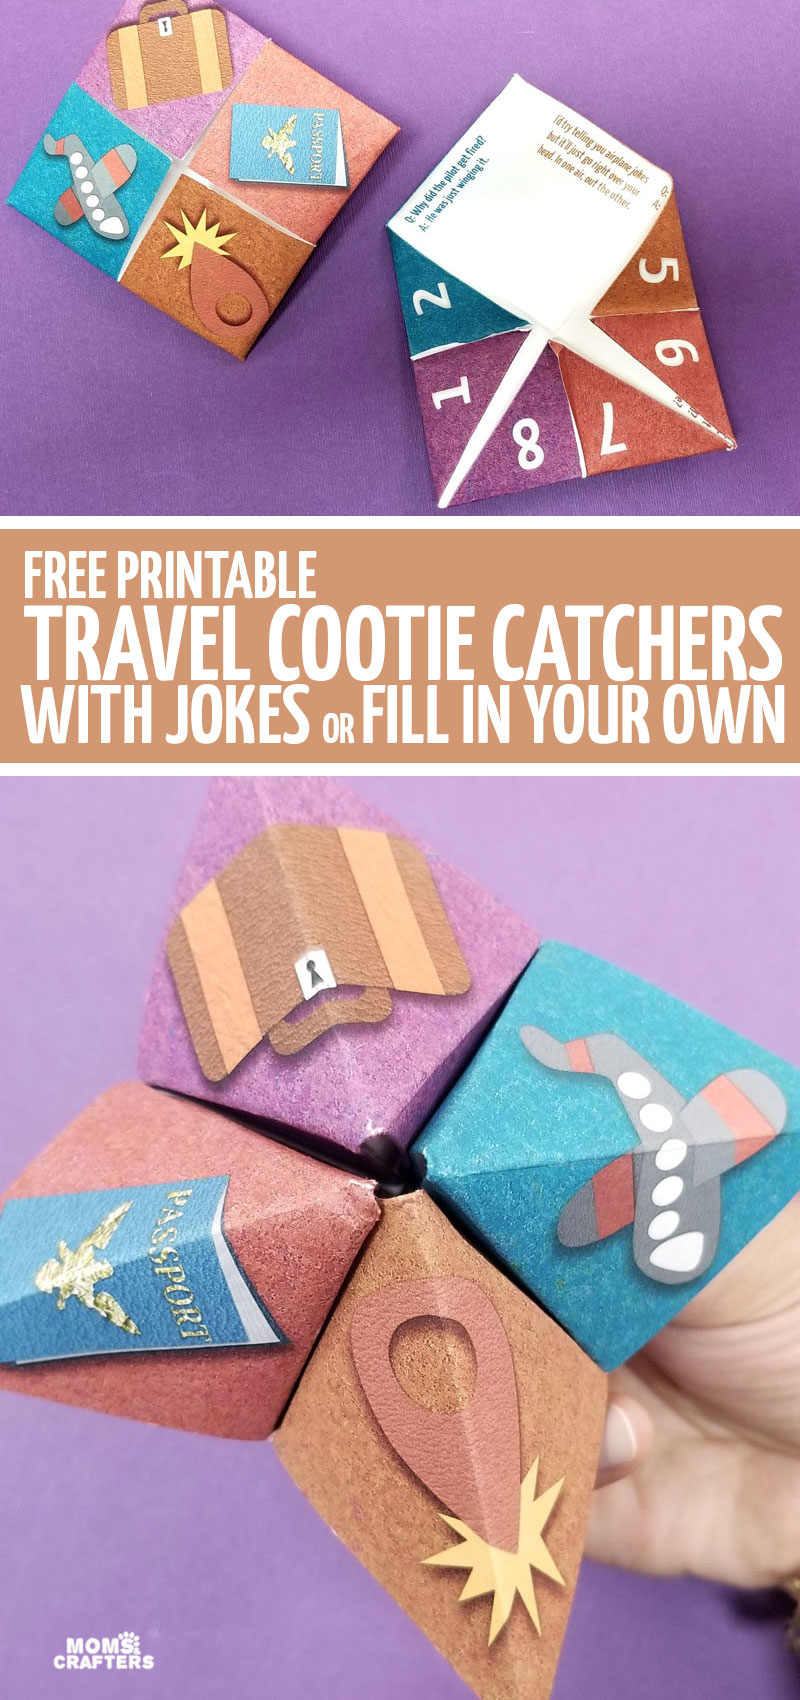 click here to download a free printable travel cootie catcher template -a fun fortune teller perfect for road trips and airplanes! Keep your kids busy with this fun free printable travel activity for kids.